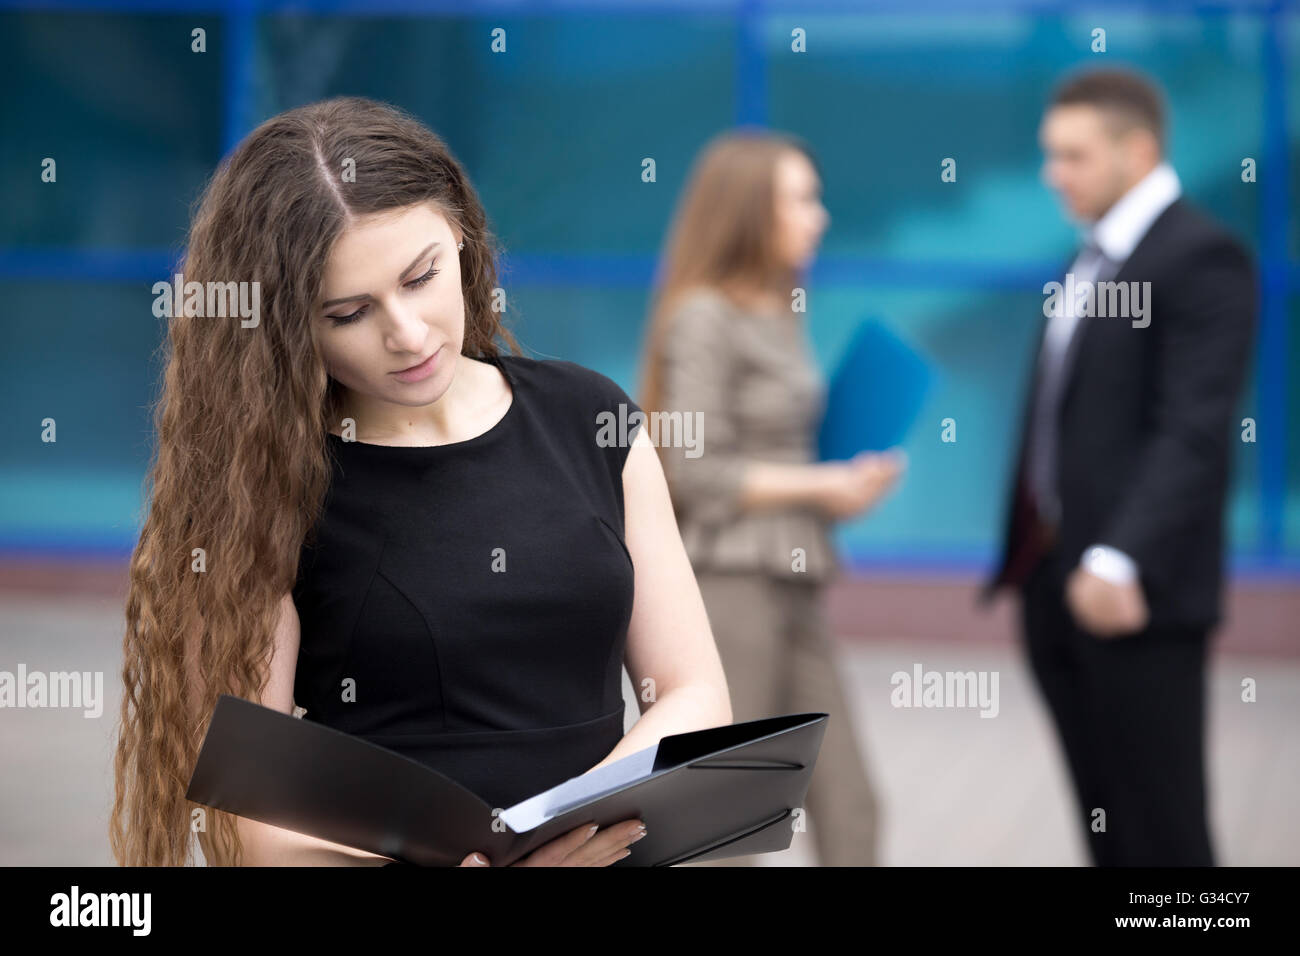 Portrait of confident young woman looking through documents with serious facial expression outdoors. Successful - Stock Image